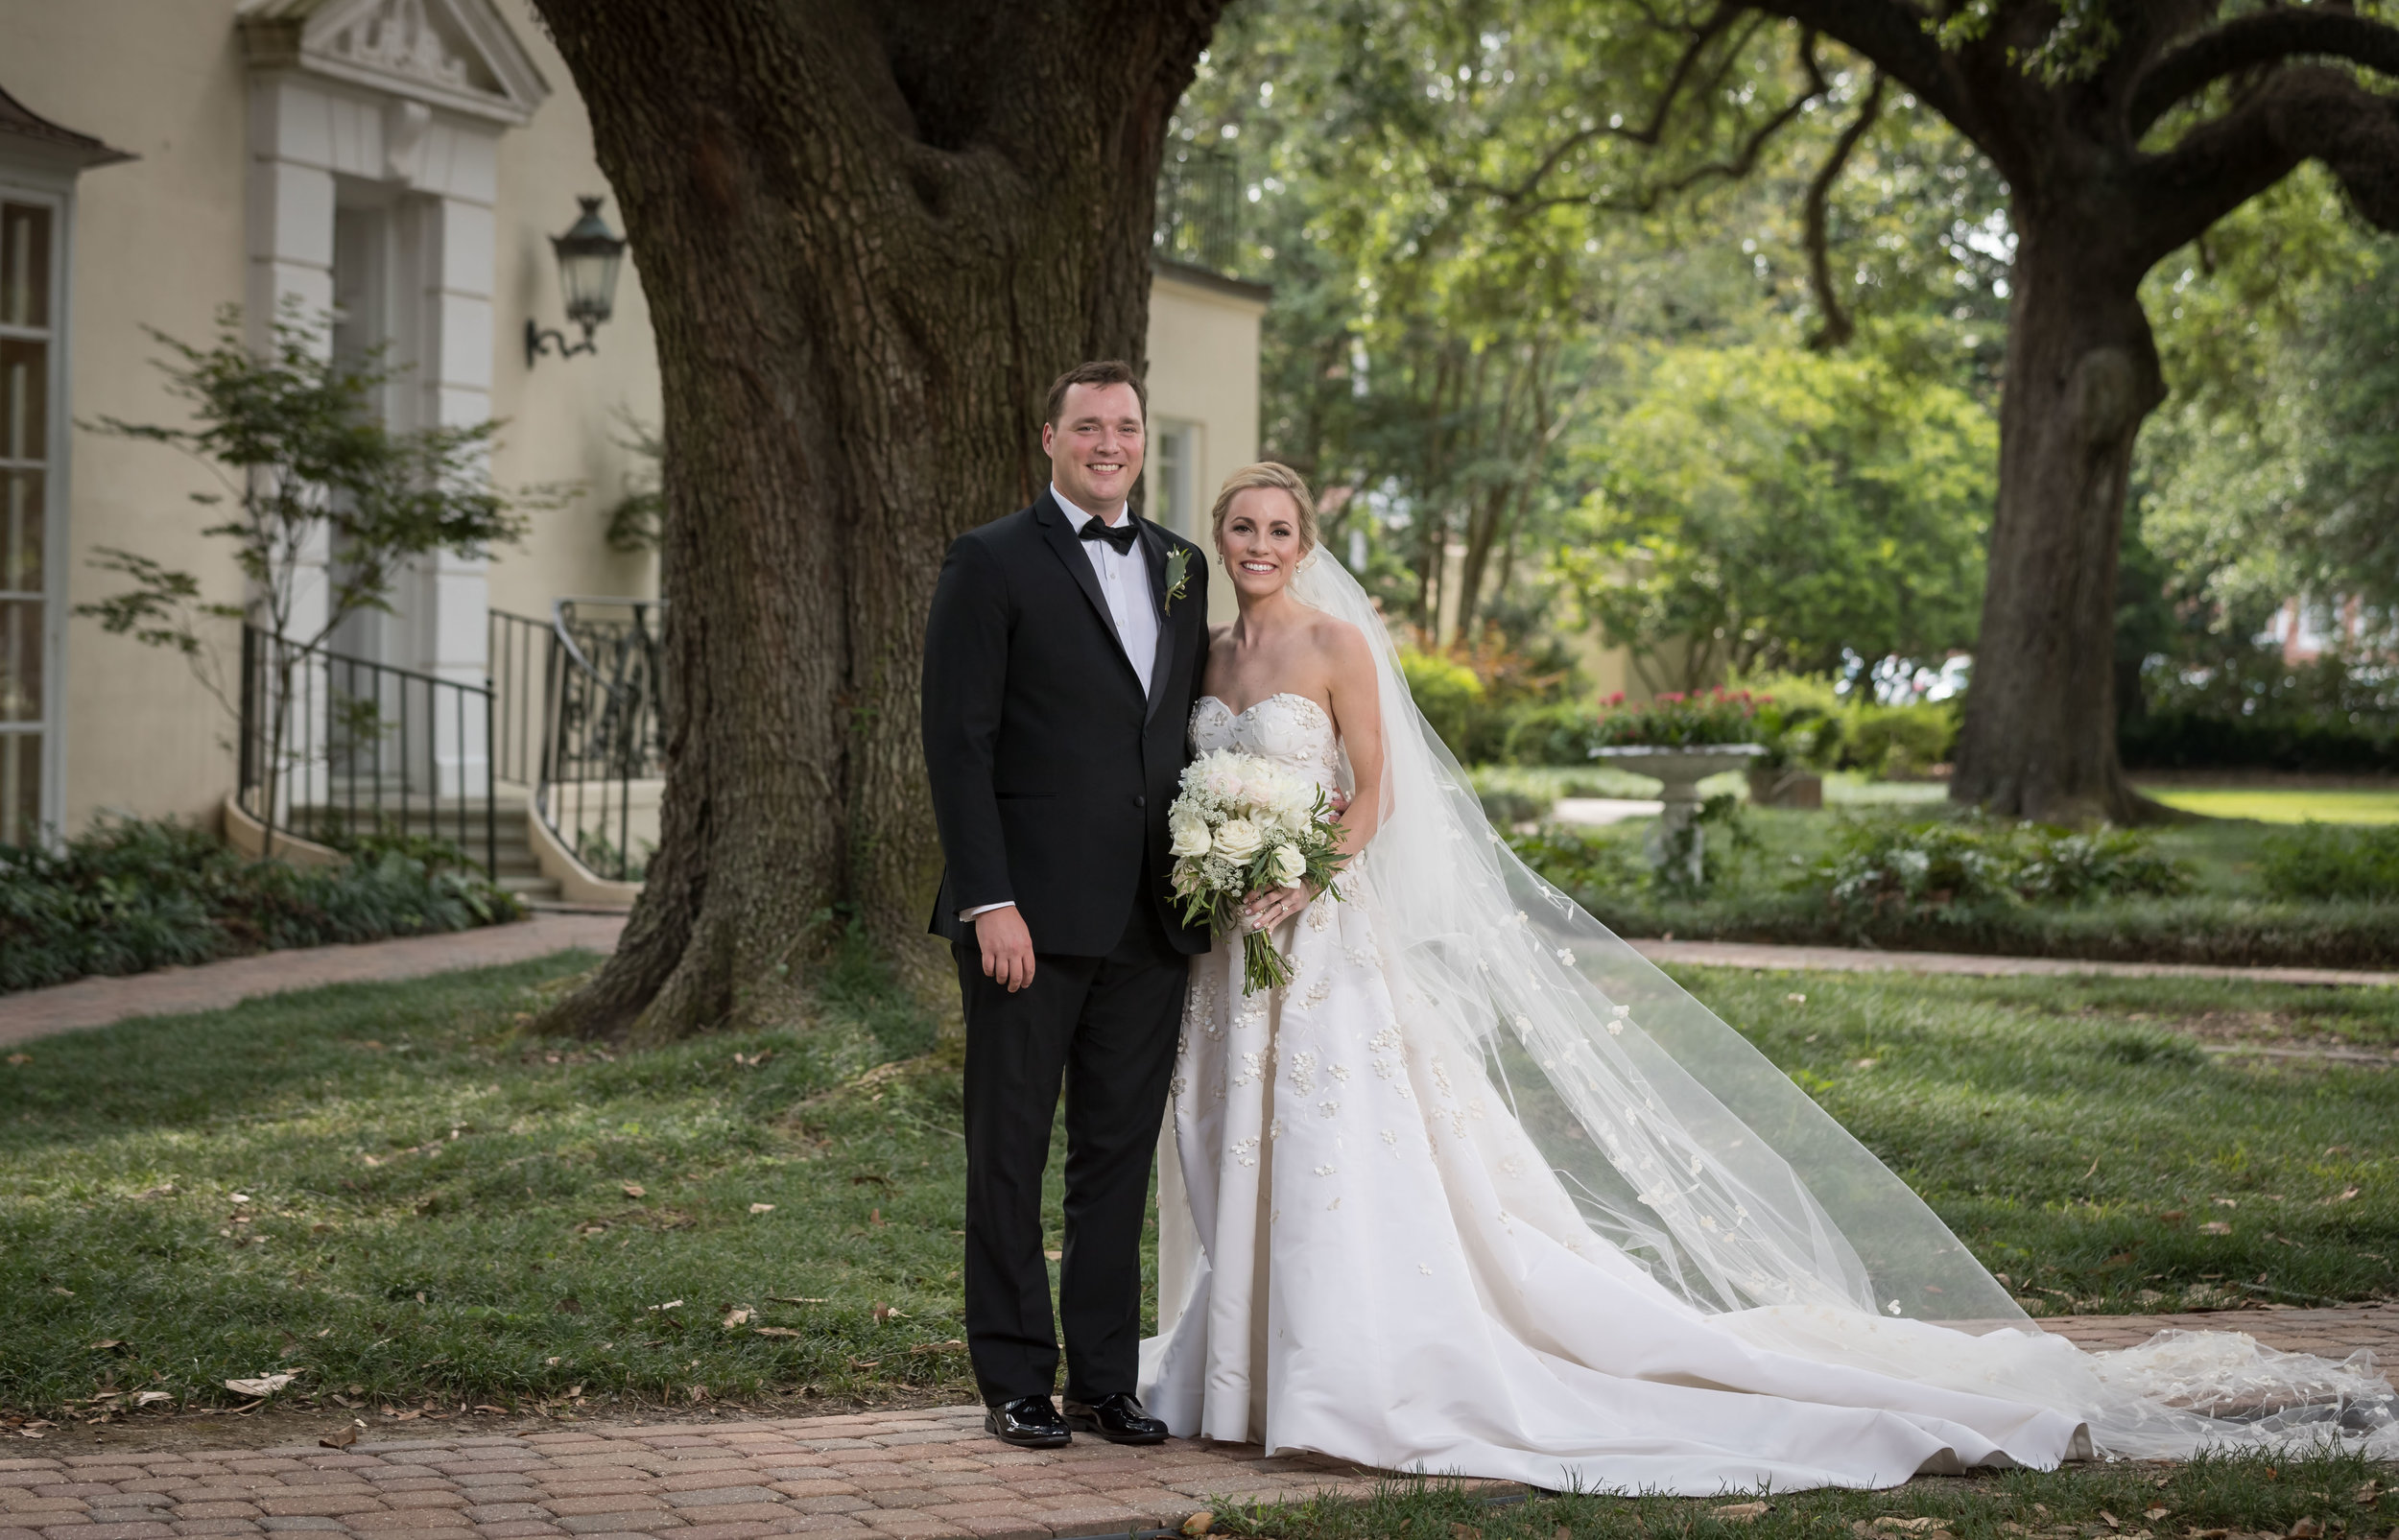 Southern Fete, Southern Wedding, Bride and Groom, Flowers by Rodney, UL Alumni Center, Jay Faugot Photography